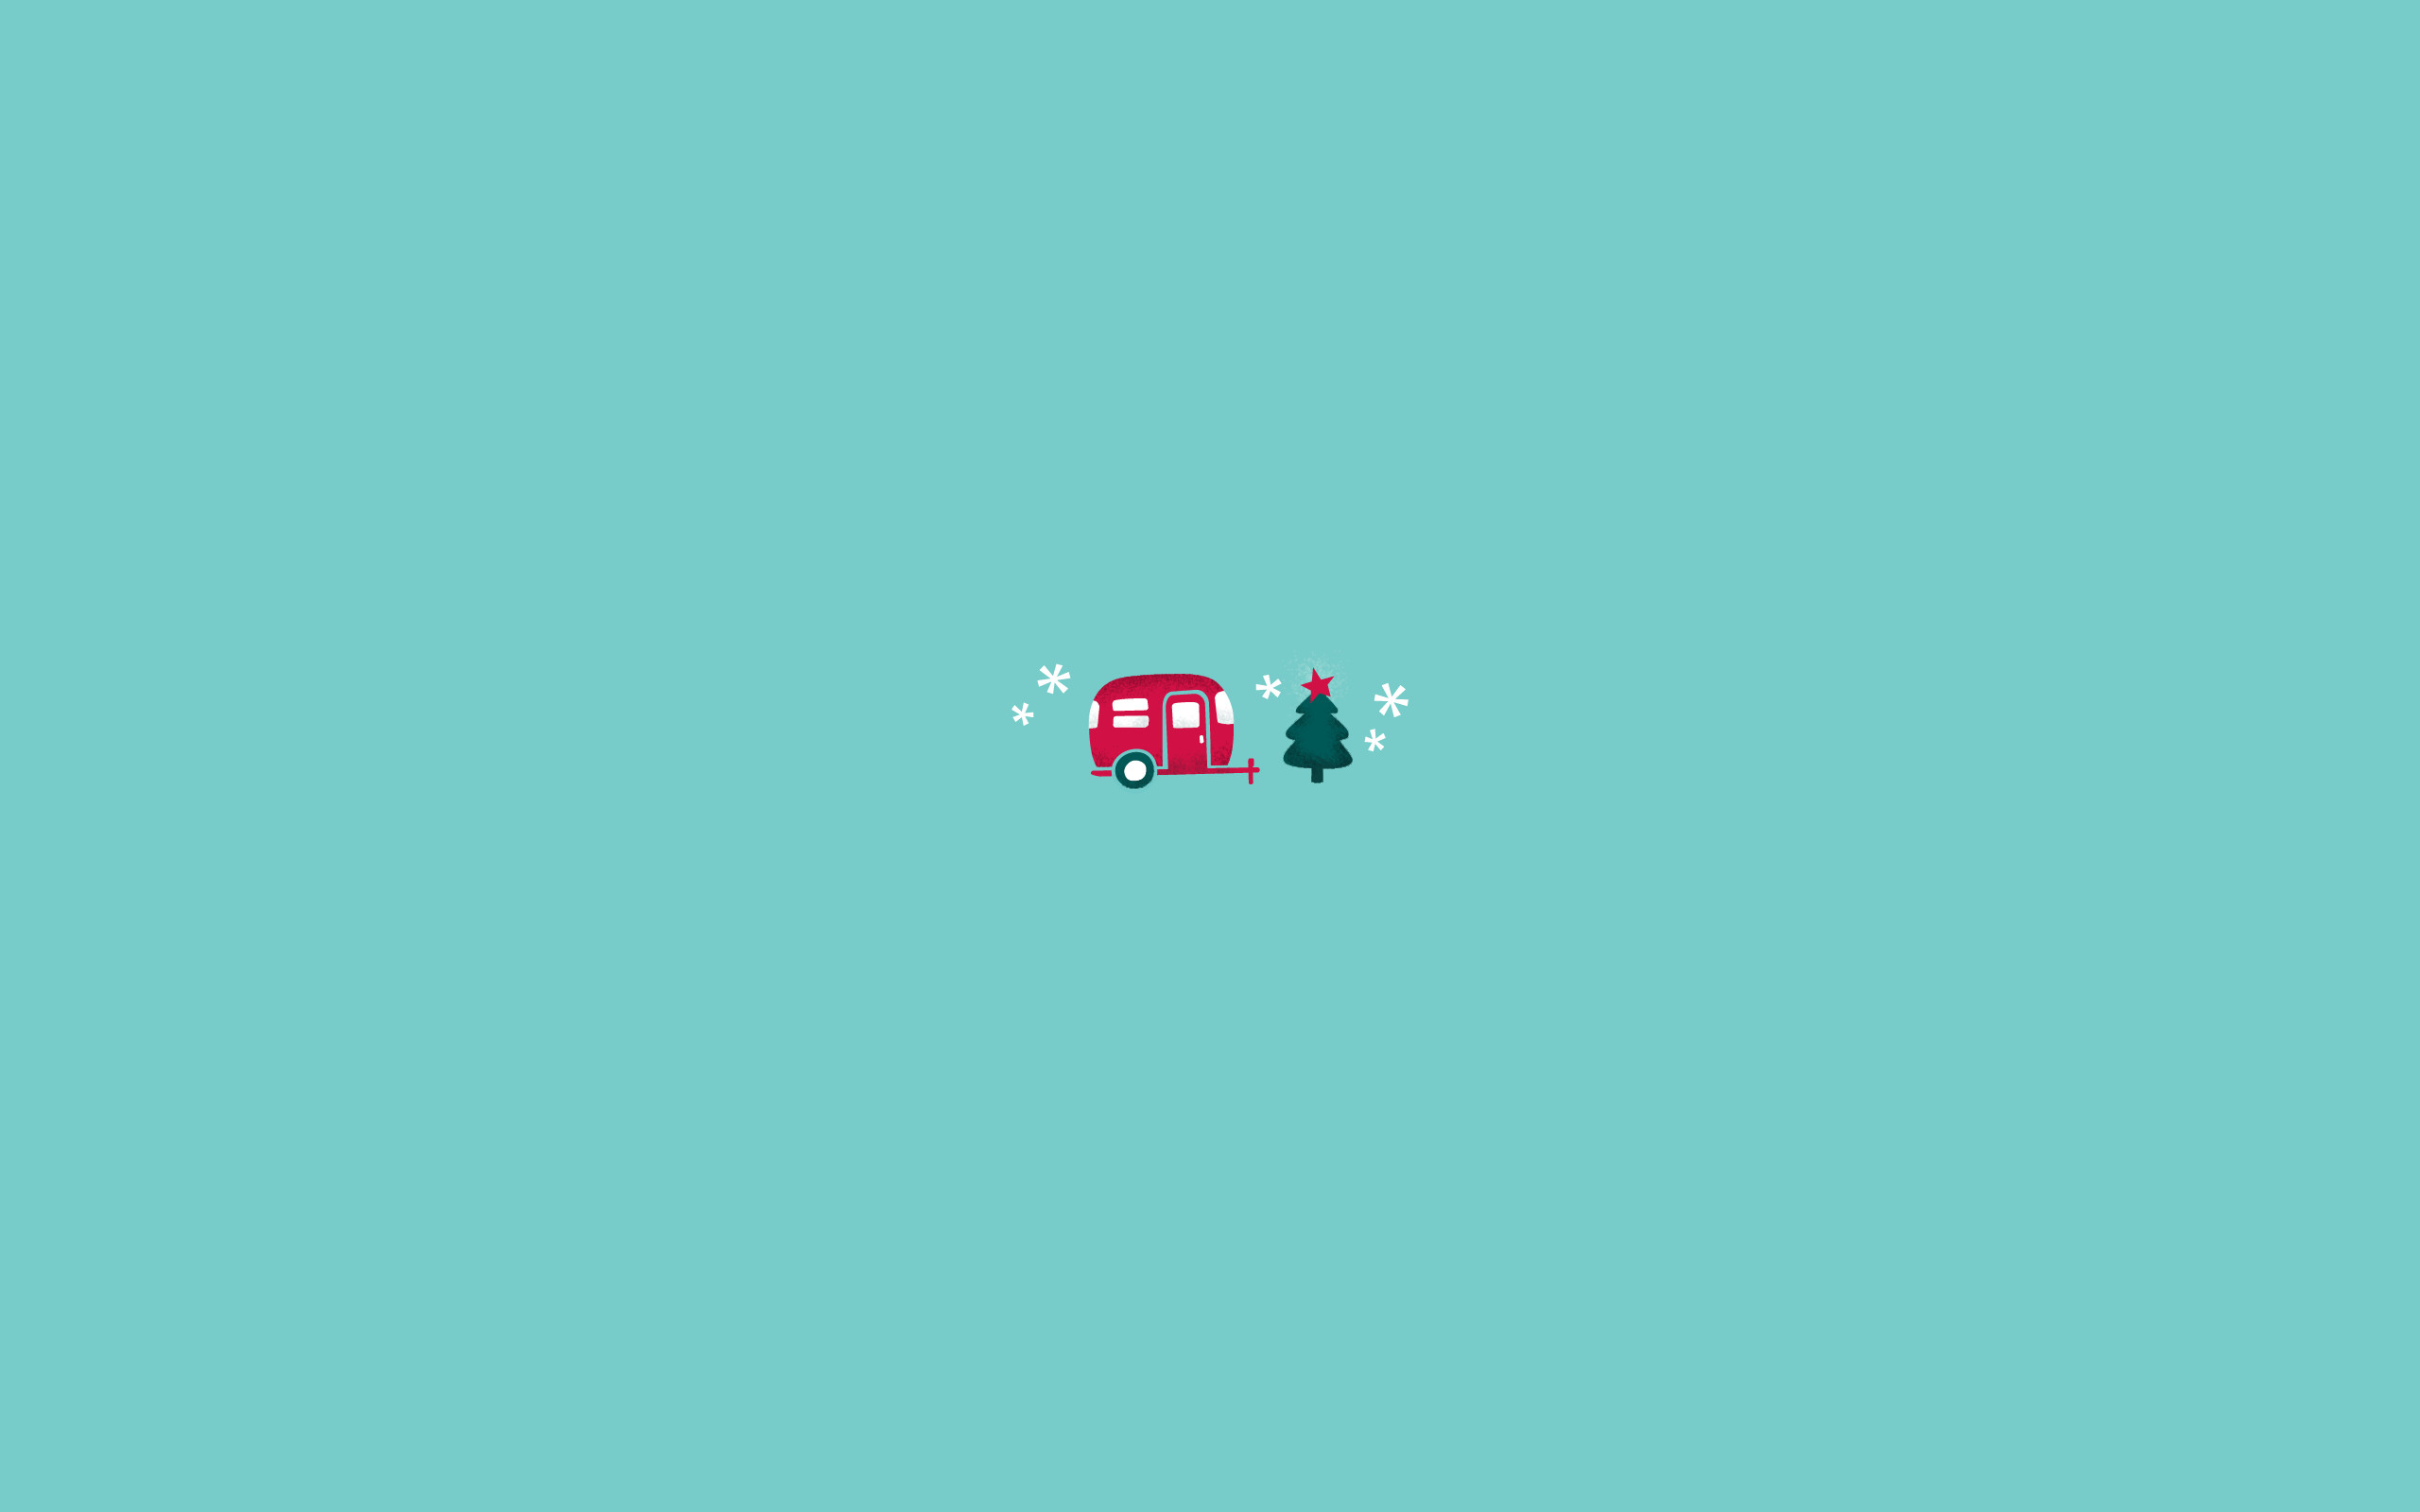 Cute Backgrounds for